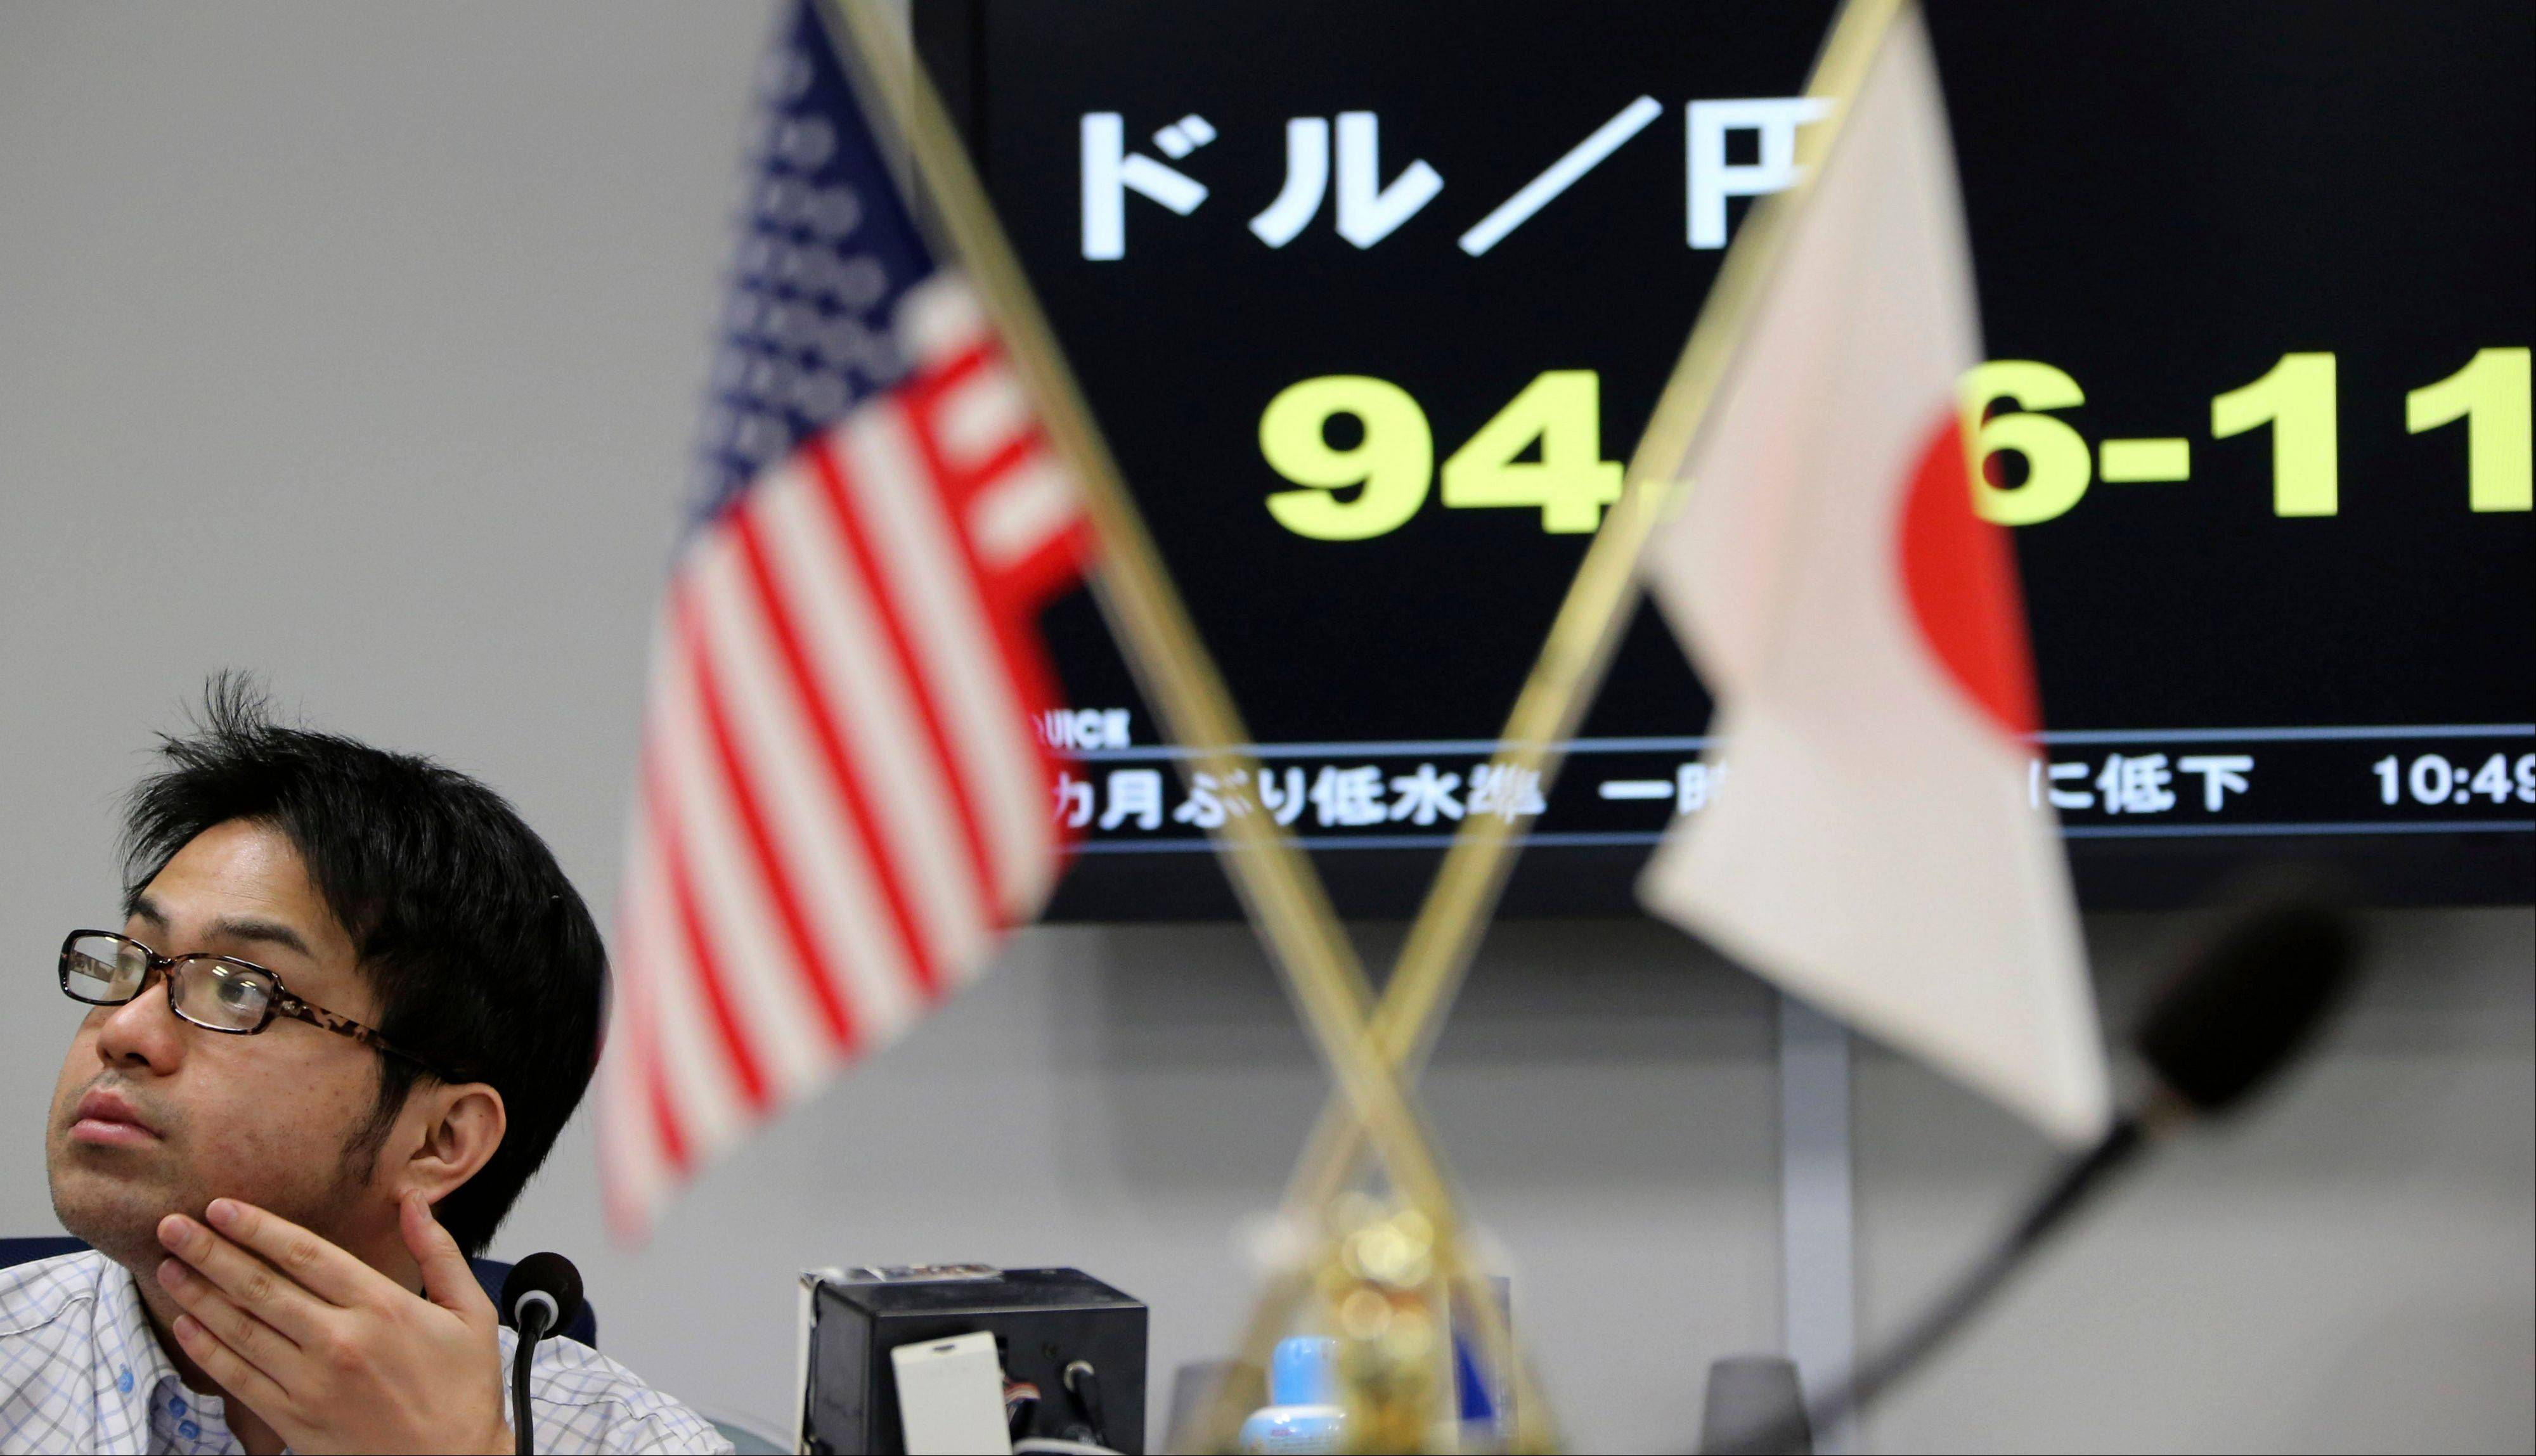 $PHOTOCREDIT_ON$$PHOTOCREDIT_OFF$ A foreign exchange broker works in front of a screen displaying the current dollar to yen rate as an American and Japanese, flag are displayed at the office in Tokyo, Monday